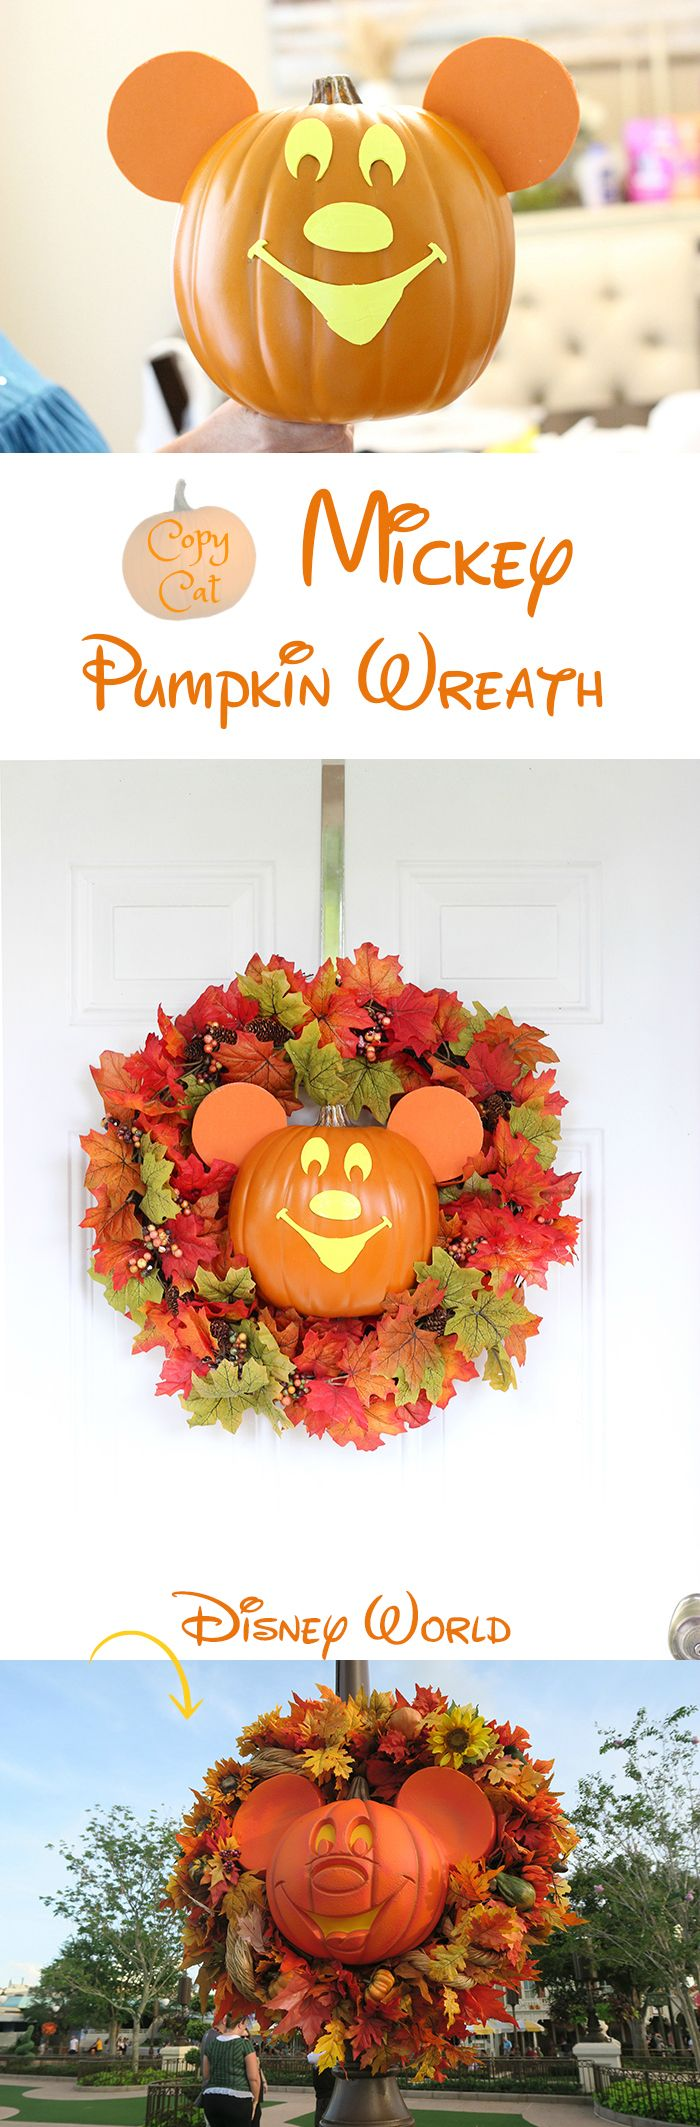 Best 25+ Disney halloween decorations ideas on Pinterest ...